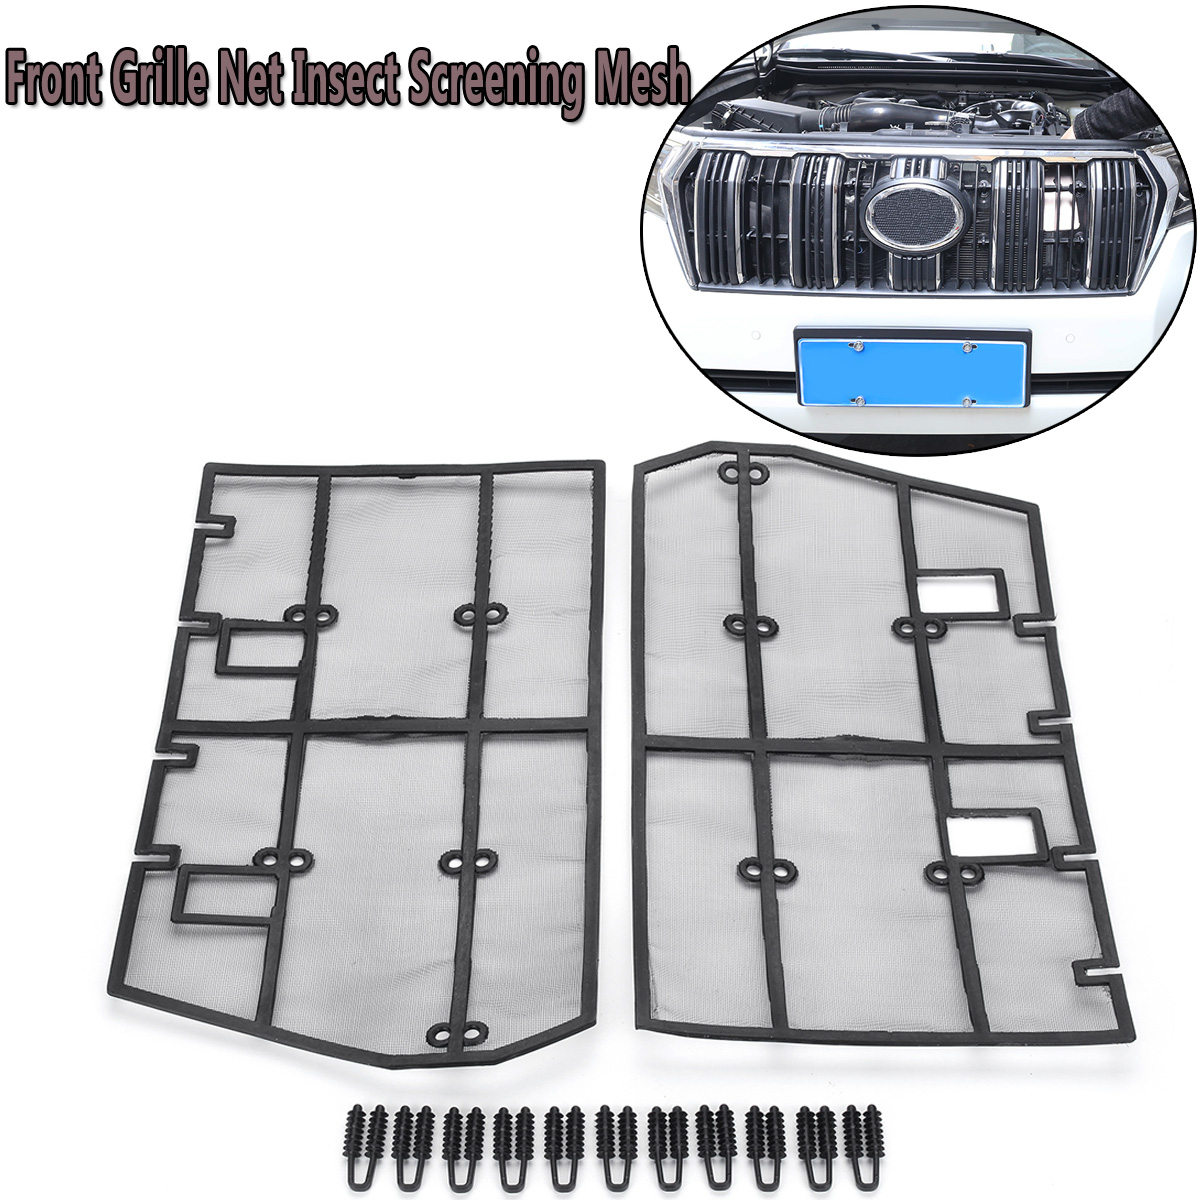 Closeout Car Front Grille Net Insect Screening Mesh For Toyota Land Cruiser Accessories Prado 2018 Exterior